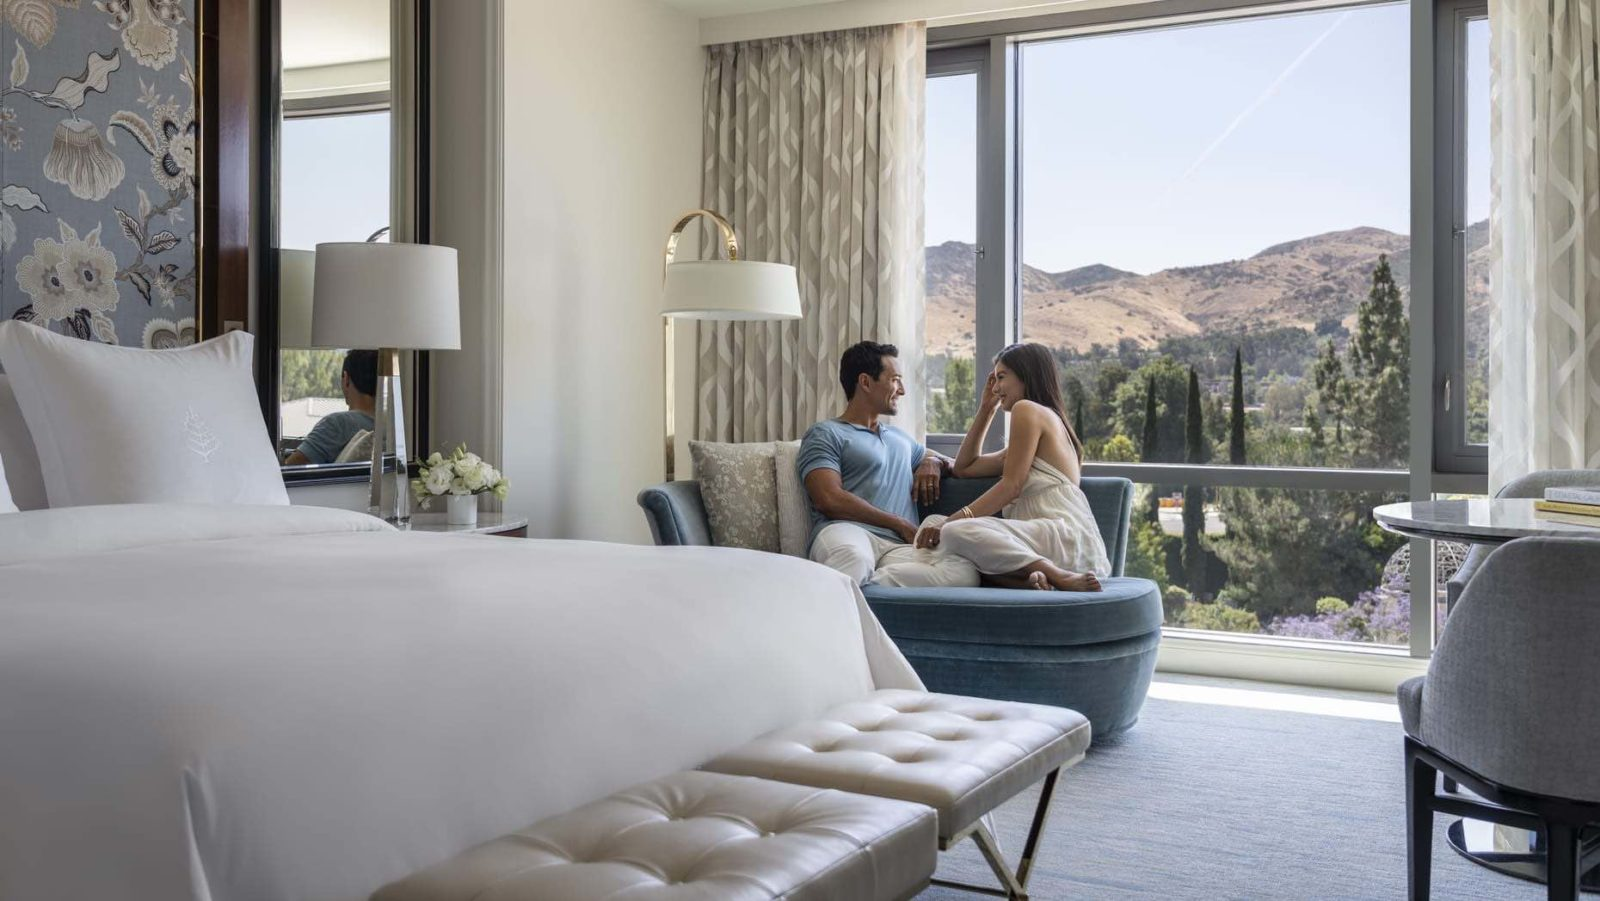 Four Seasons Westlake Village luxury hotel stay is a top thing to do in Westlake Village